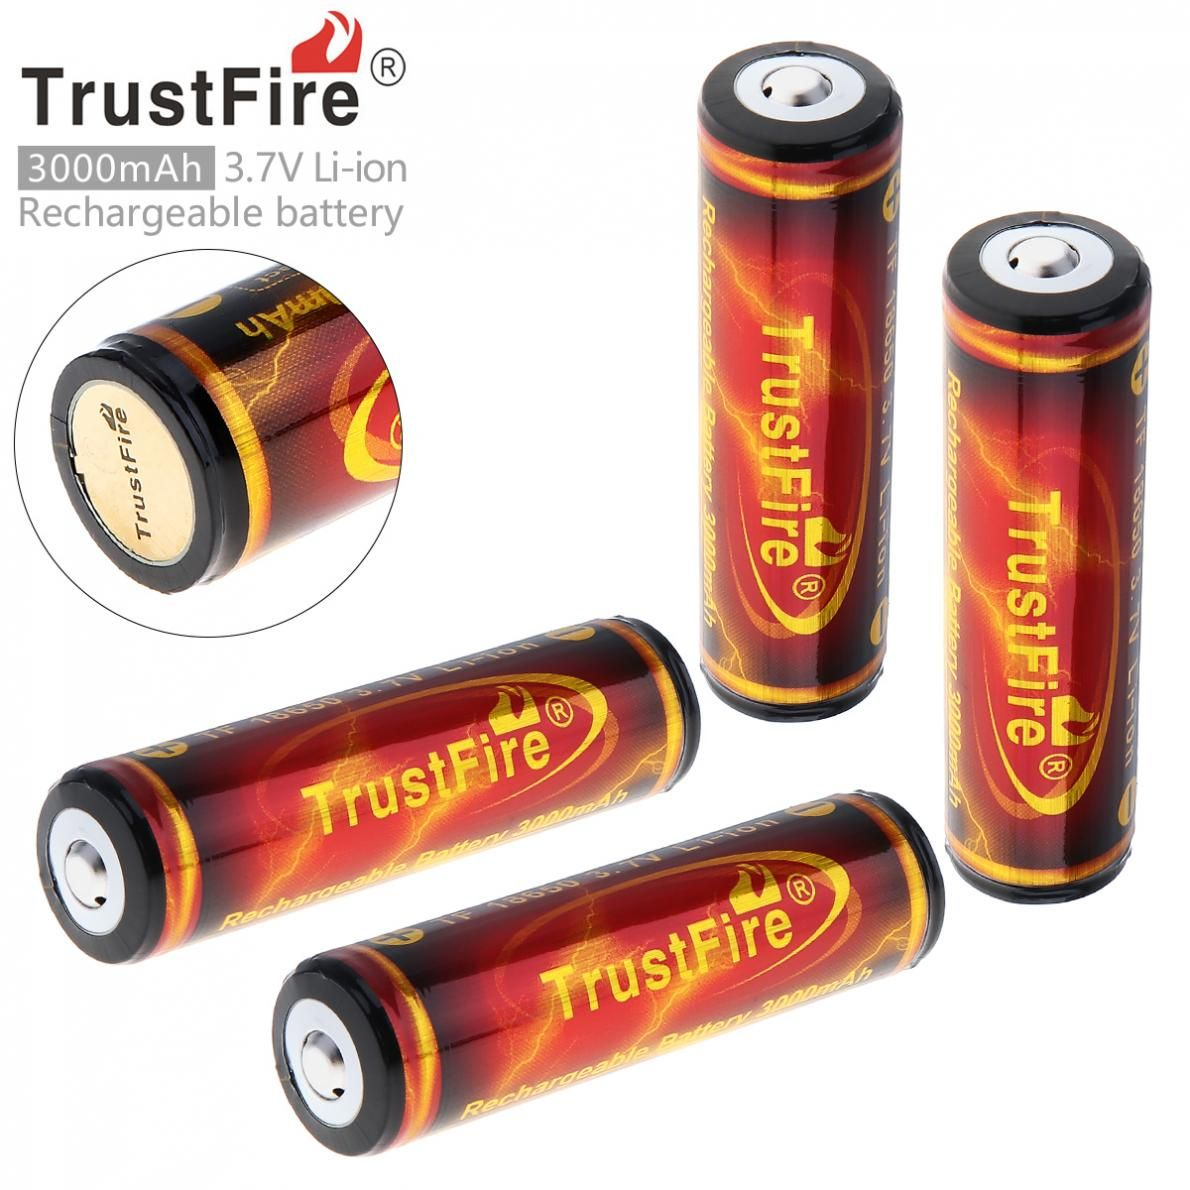 4 Pieces TrustFire Genuine <font><b>3000mAh</b></font> 18650 3.7V Li-ion Rechargeable Battery 18650 Battery Batteries with Protected PCB